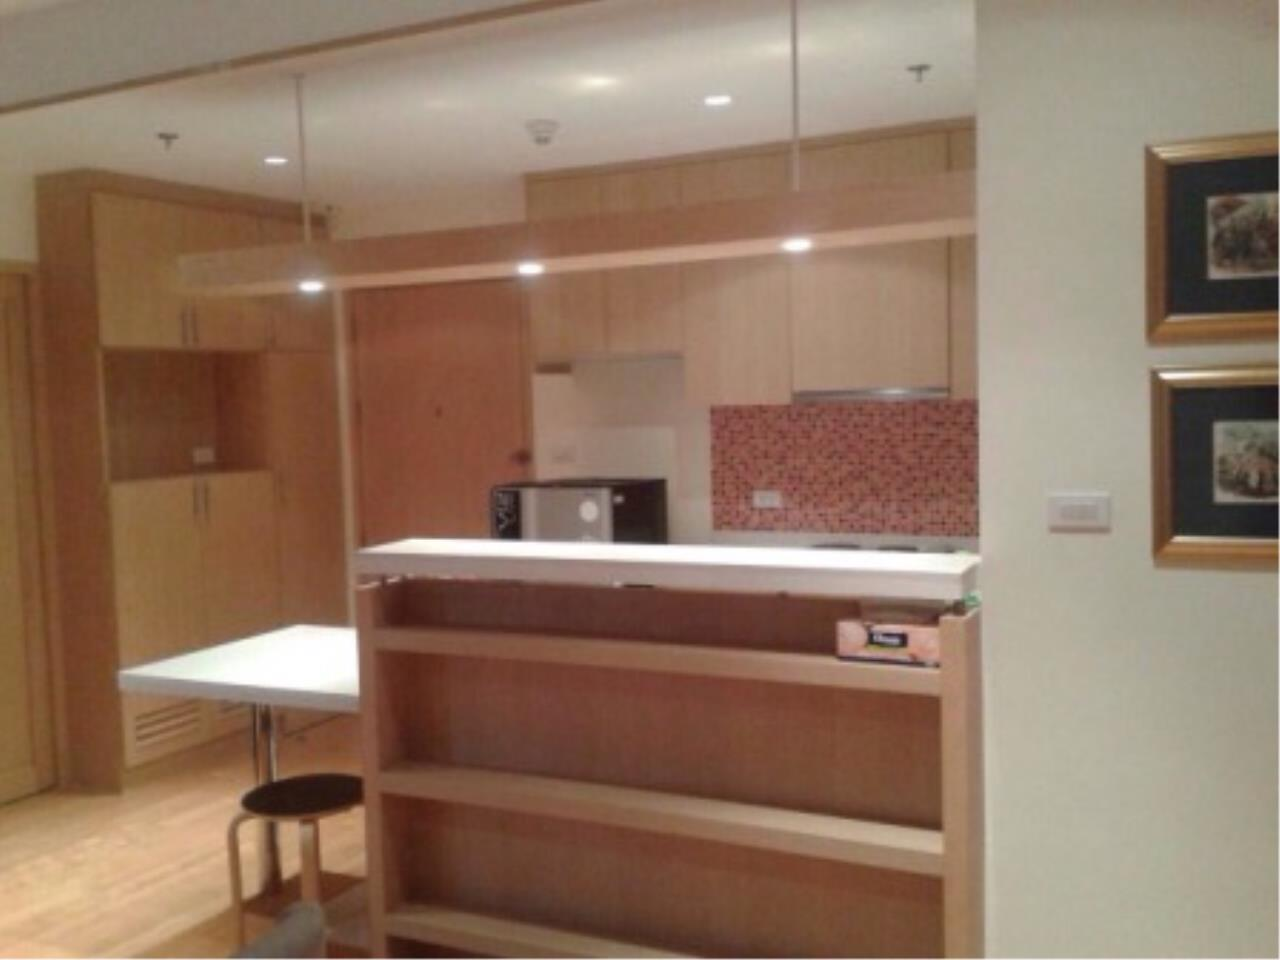 BKK Condos Agency's 2 bedroom condo for sale at Villa Ratchathewi 15